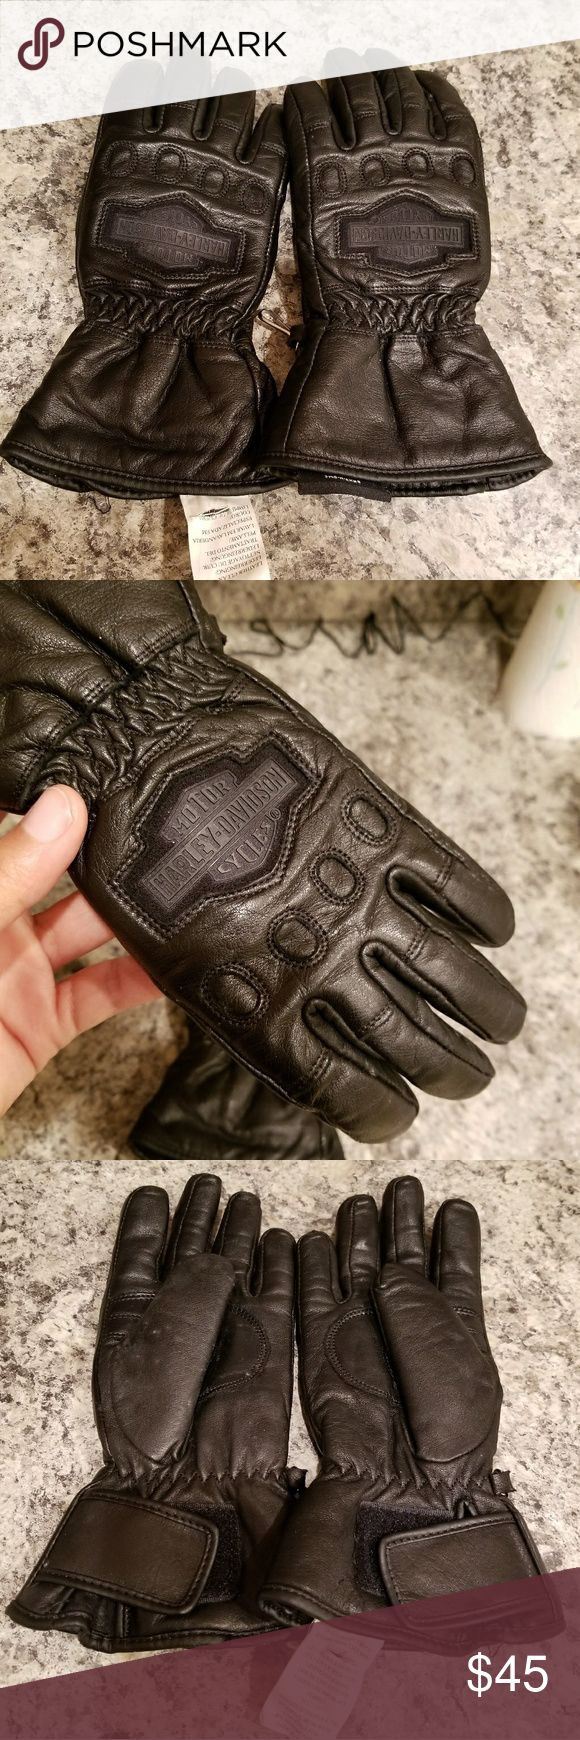 EUC Women's Harley-Davidson Leather Gloves XS EUC Women's Unisex Harley Davidson Leather Gloves XS  Superb gloves.  That could be mens or women's. They are Xs.  Length from that longest digit is 9.5 inches Width 5 inches  Features zip up design for an extra tight fit.   Breathable design  Color black Embroidered motor Harley Davidson cycles logo on front. Harley-Davidson Accessories Gloves & Mittens